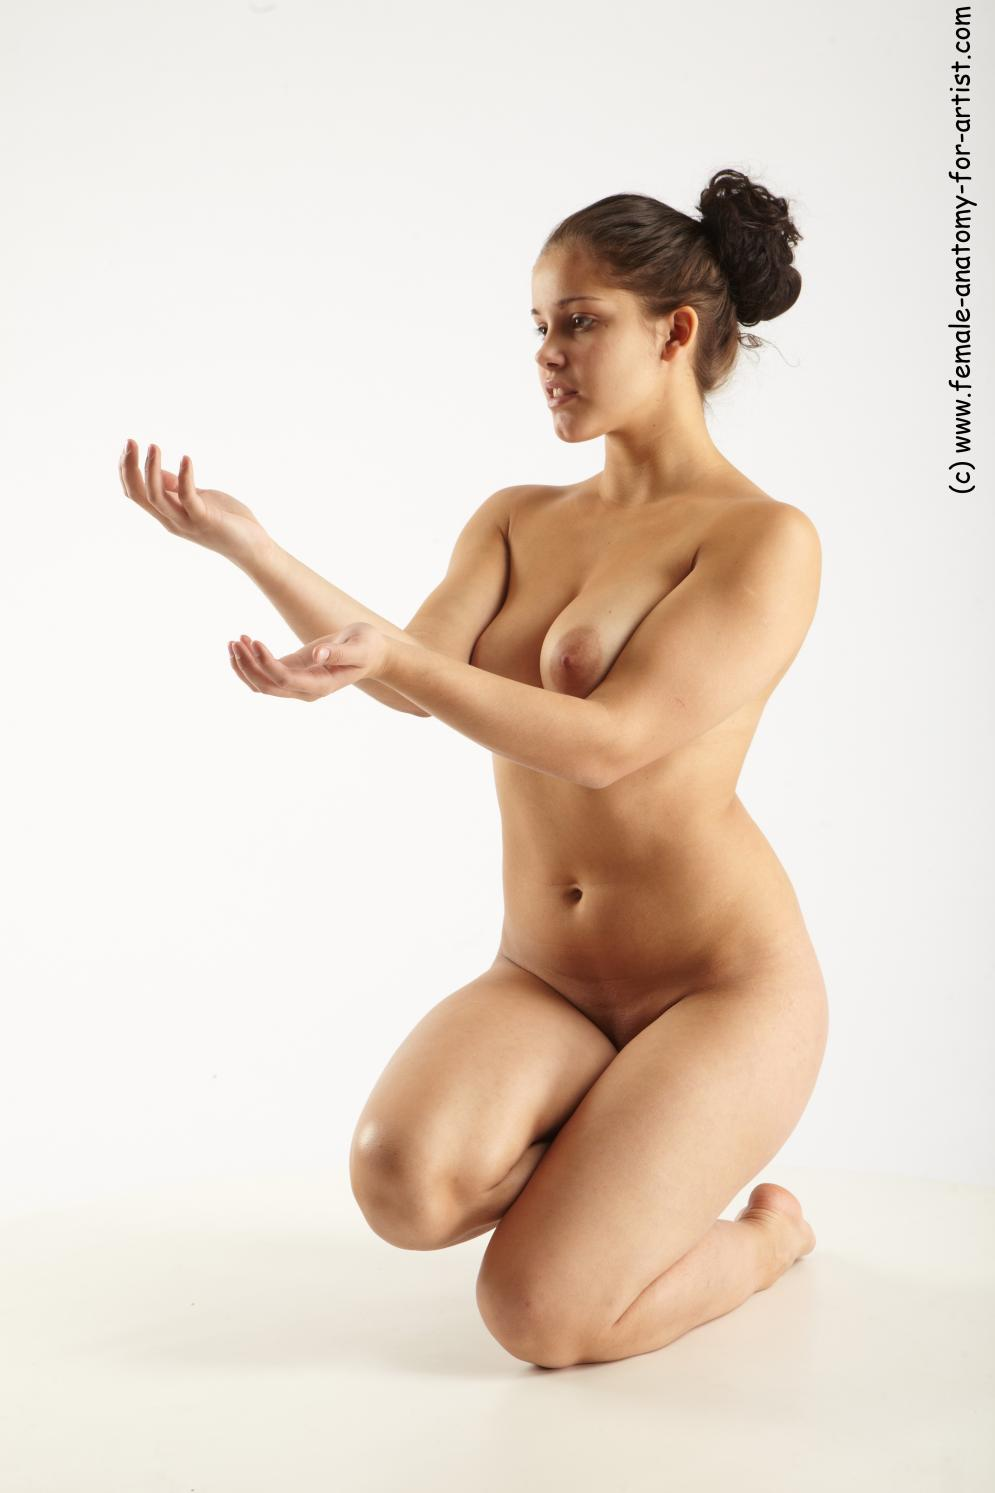 Image from Female-Anatomy-for-Artists.com - johana_kneeling_02.jpg